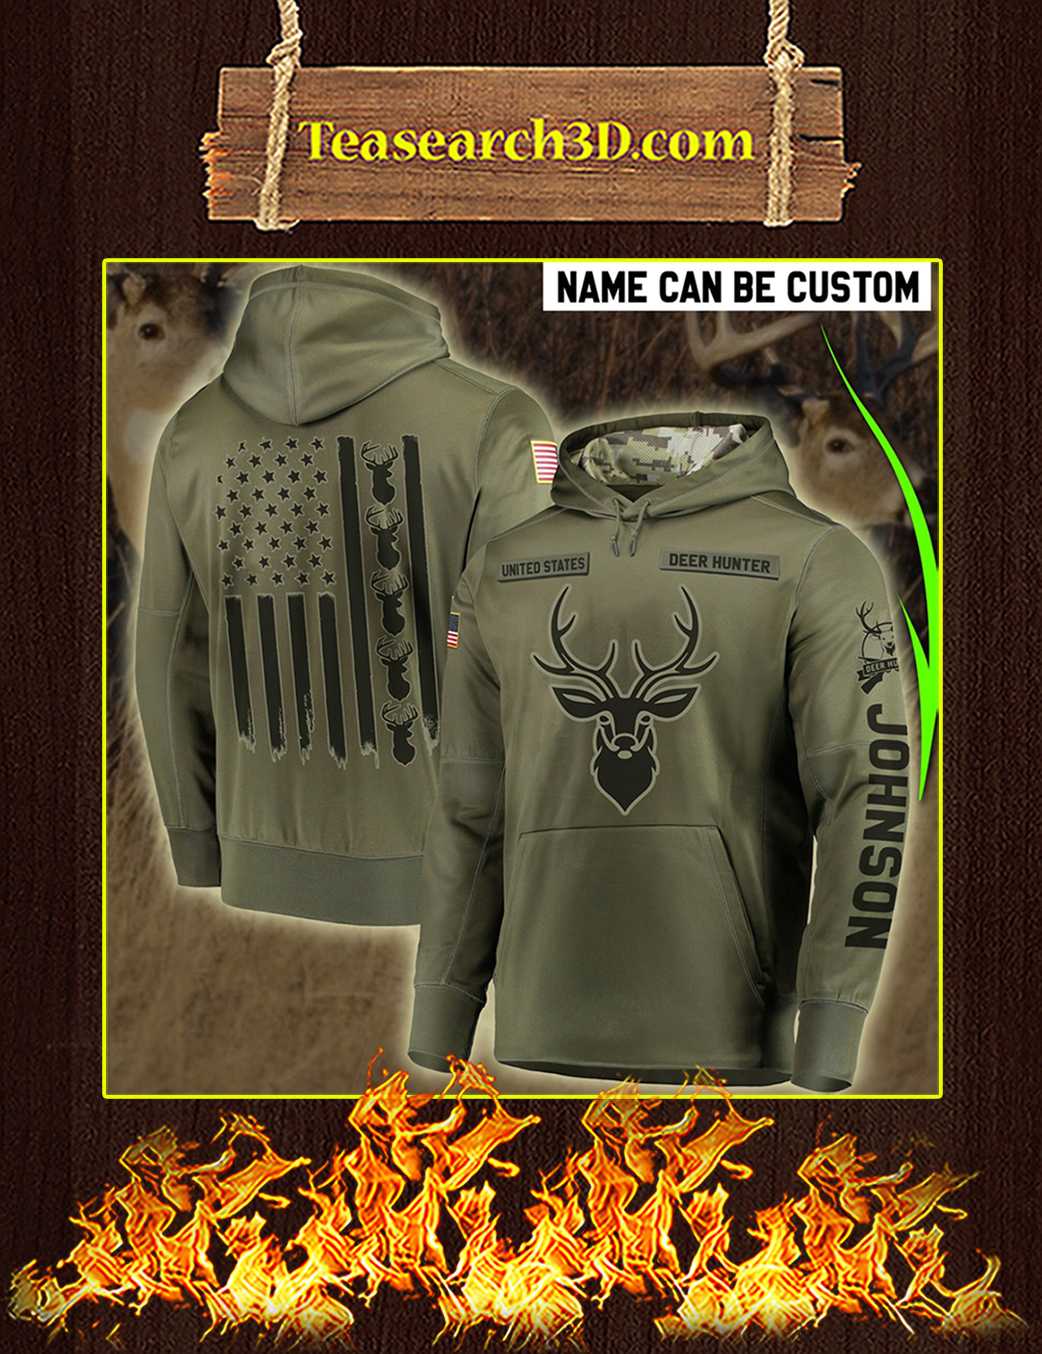 Personalized Custom Name Deer Hunter All Over Printed 3D Hoodie Size M